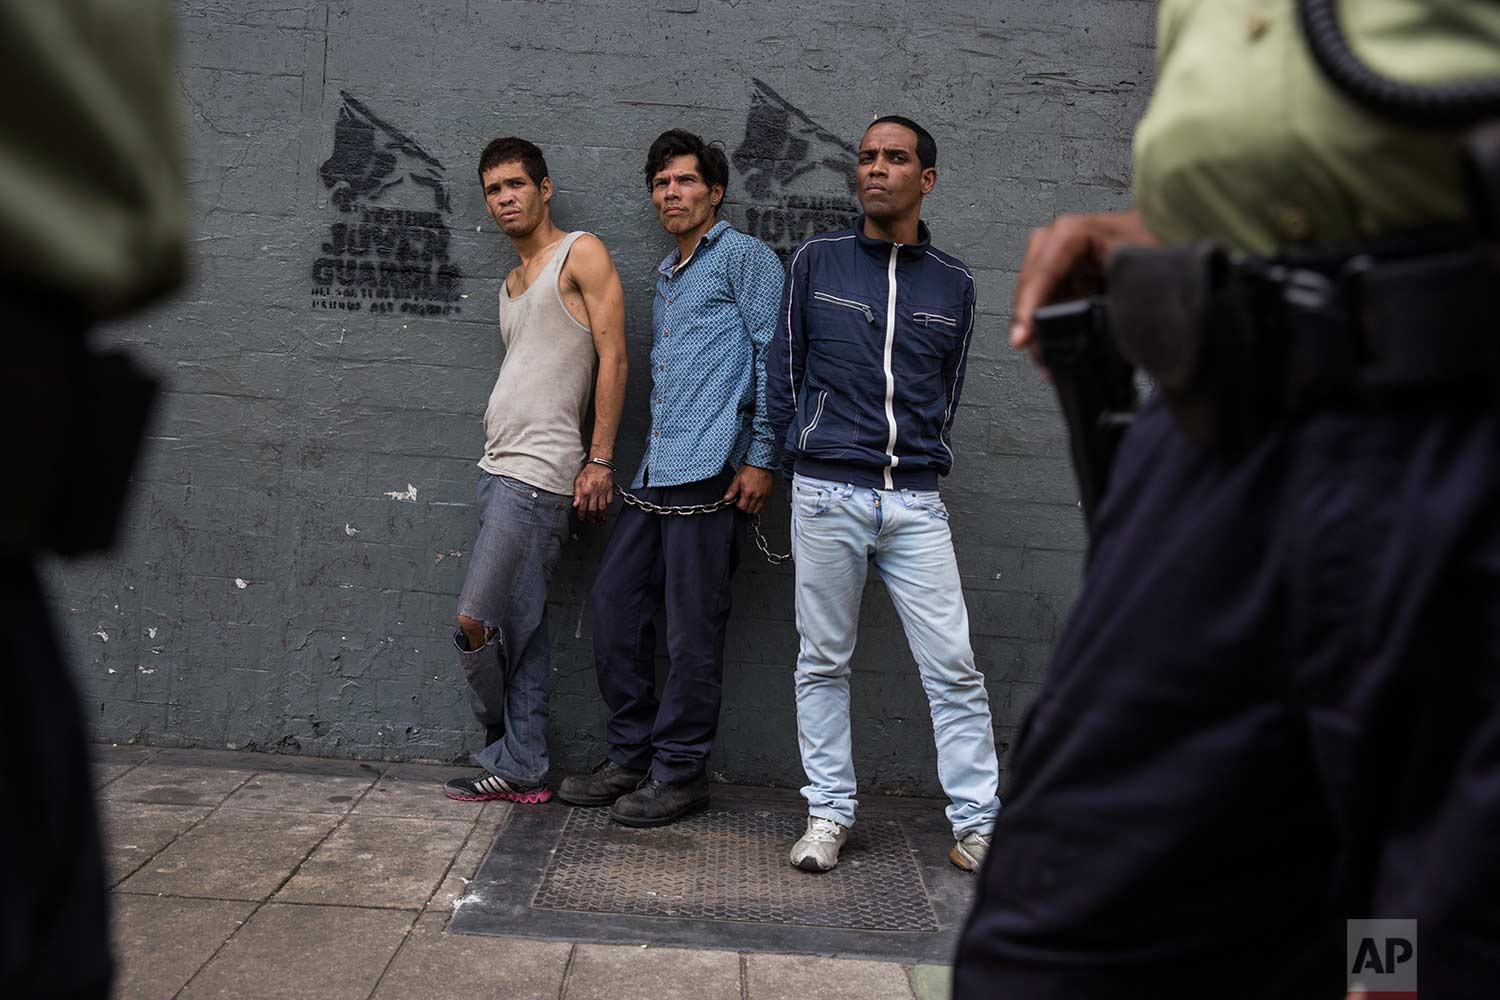 Suspected thieves chained together look at police after they were detained in downtown in Caracas, Venezuela, Wednesday, Oct. 25, 2017. (AP Photo/Rodrigo Abd)